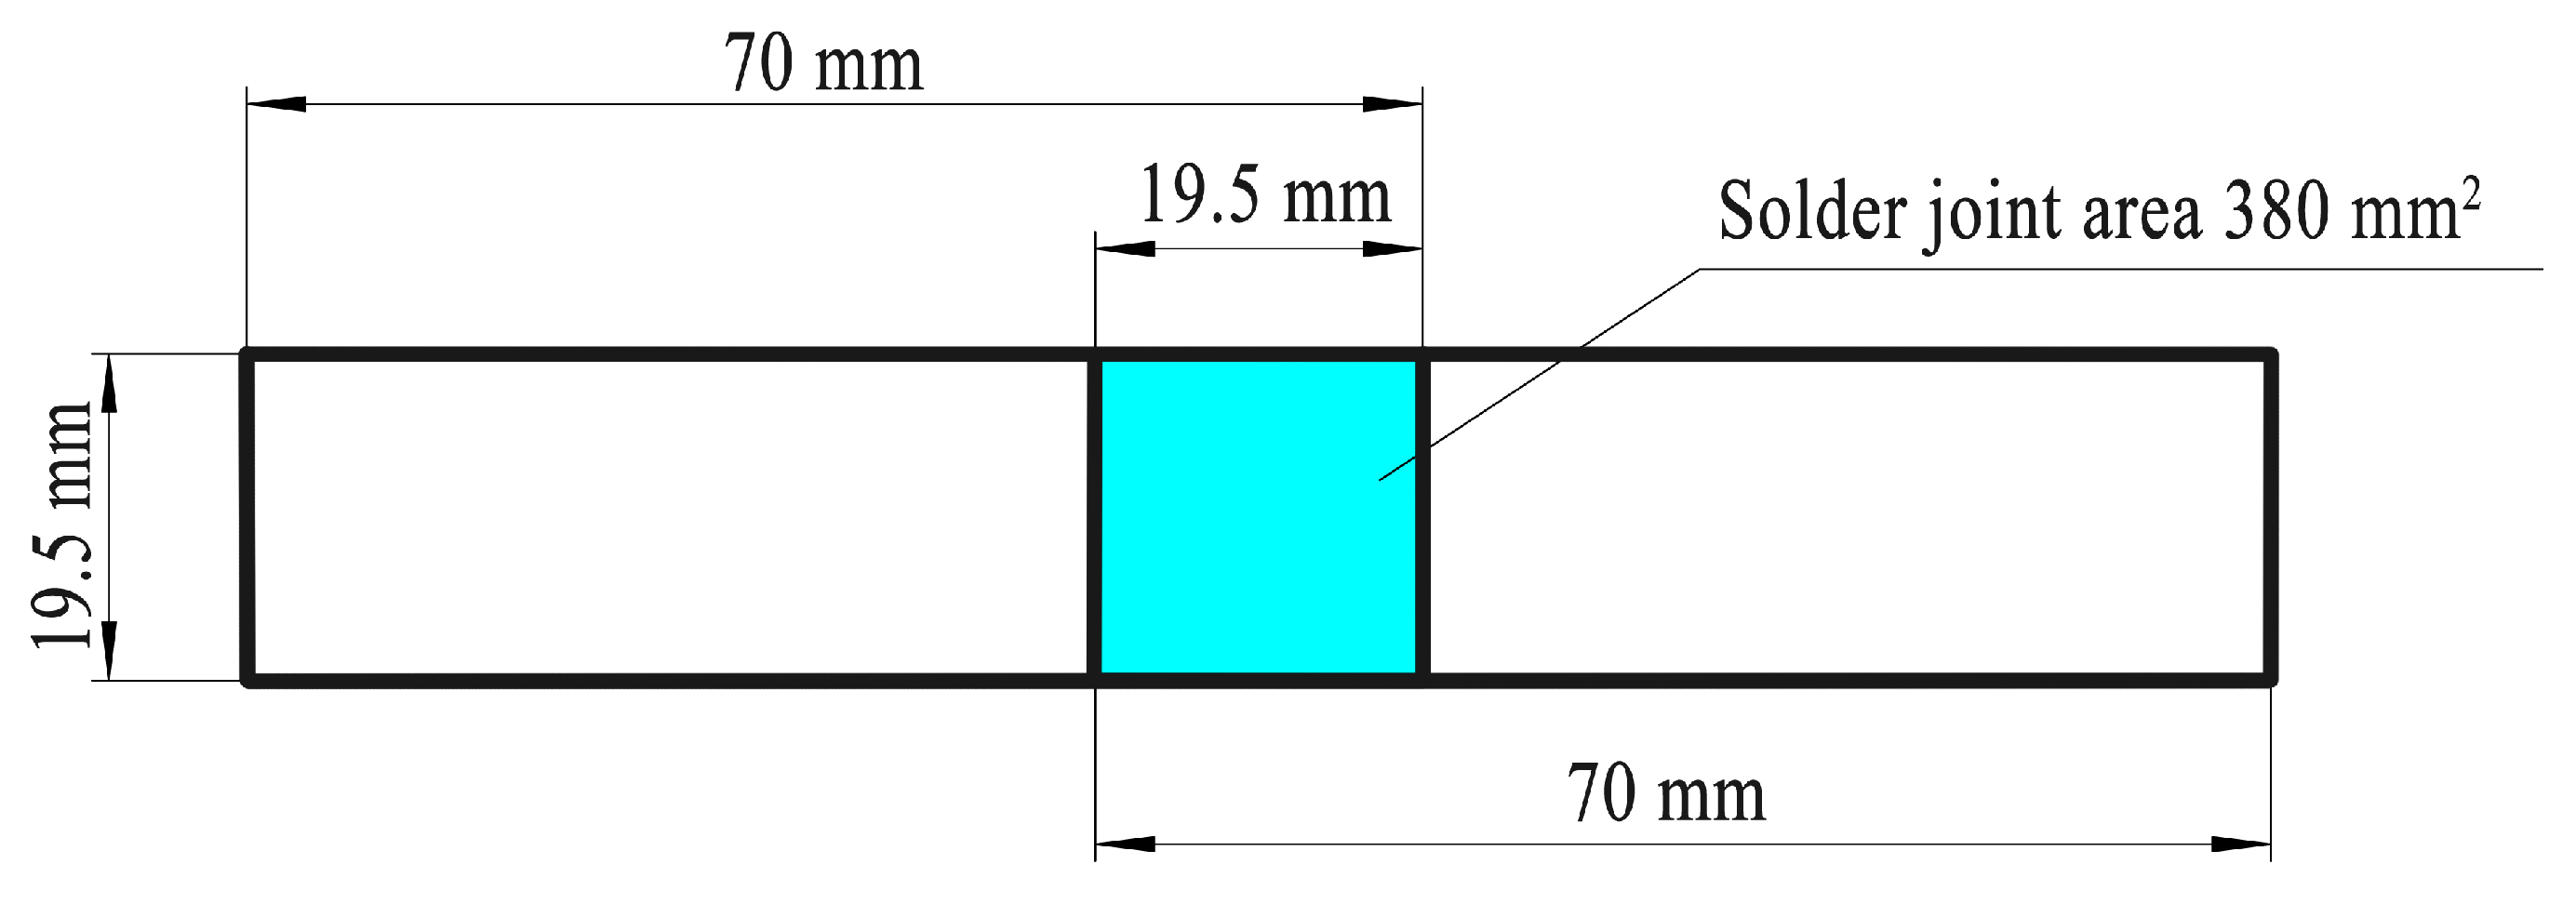 Spot Weld Defect Diagram Electrical Wiring Welding Defects With Friction Stir Diagrams Edge Chart